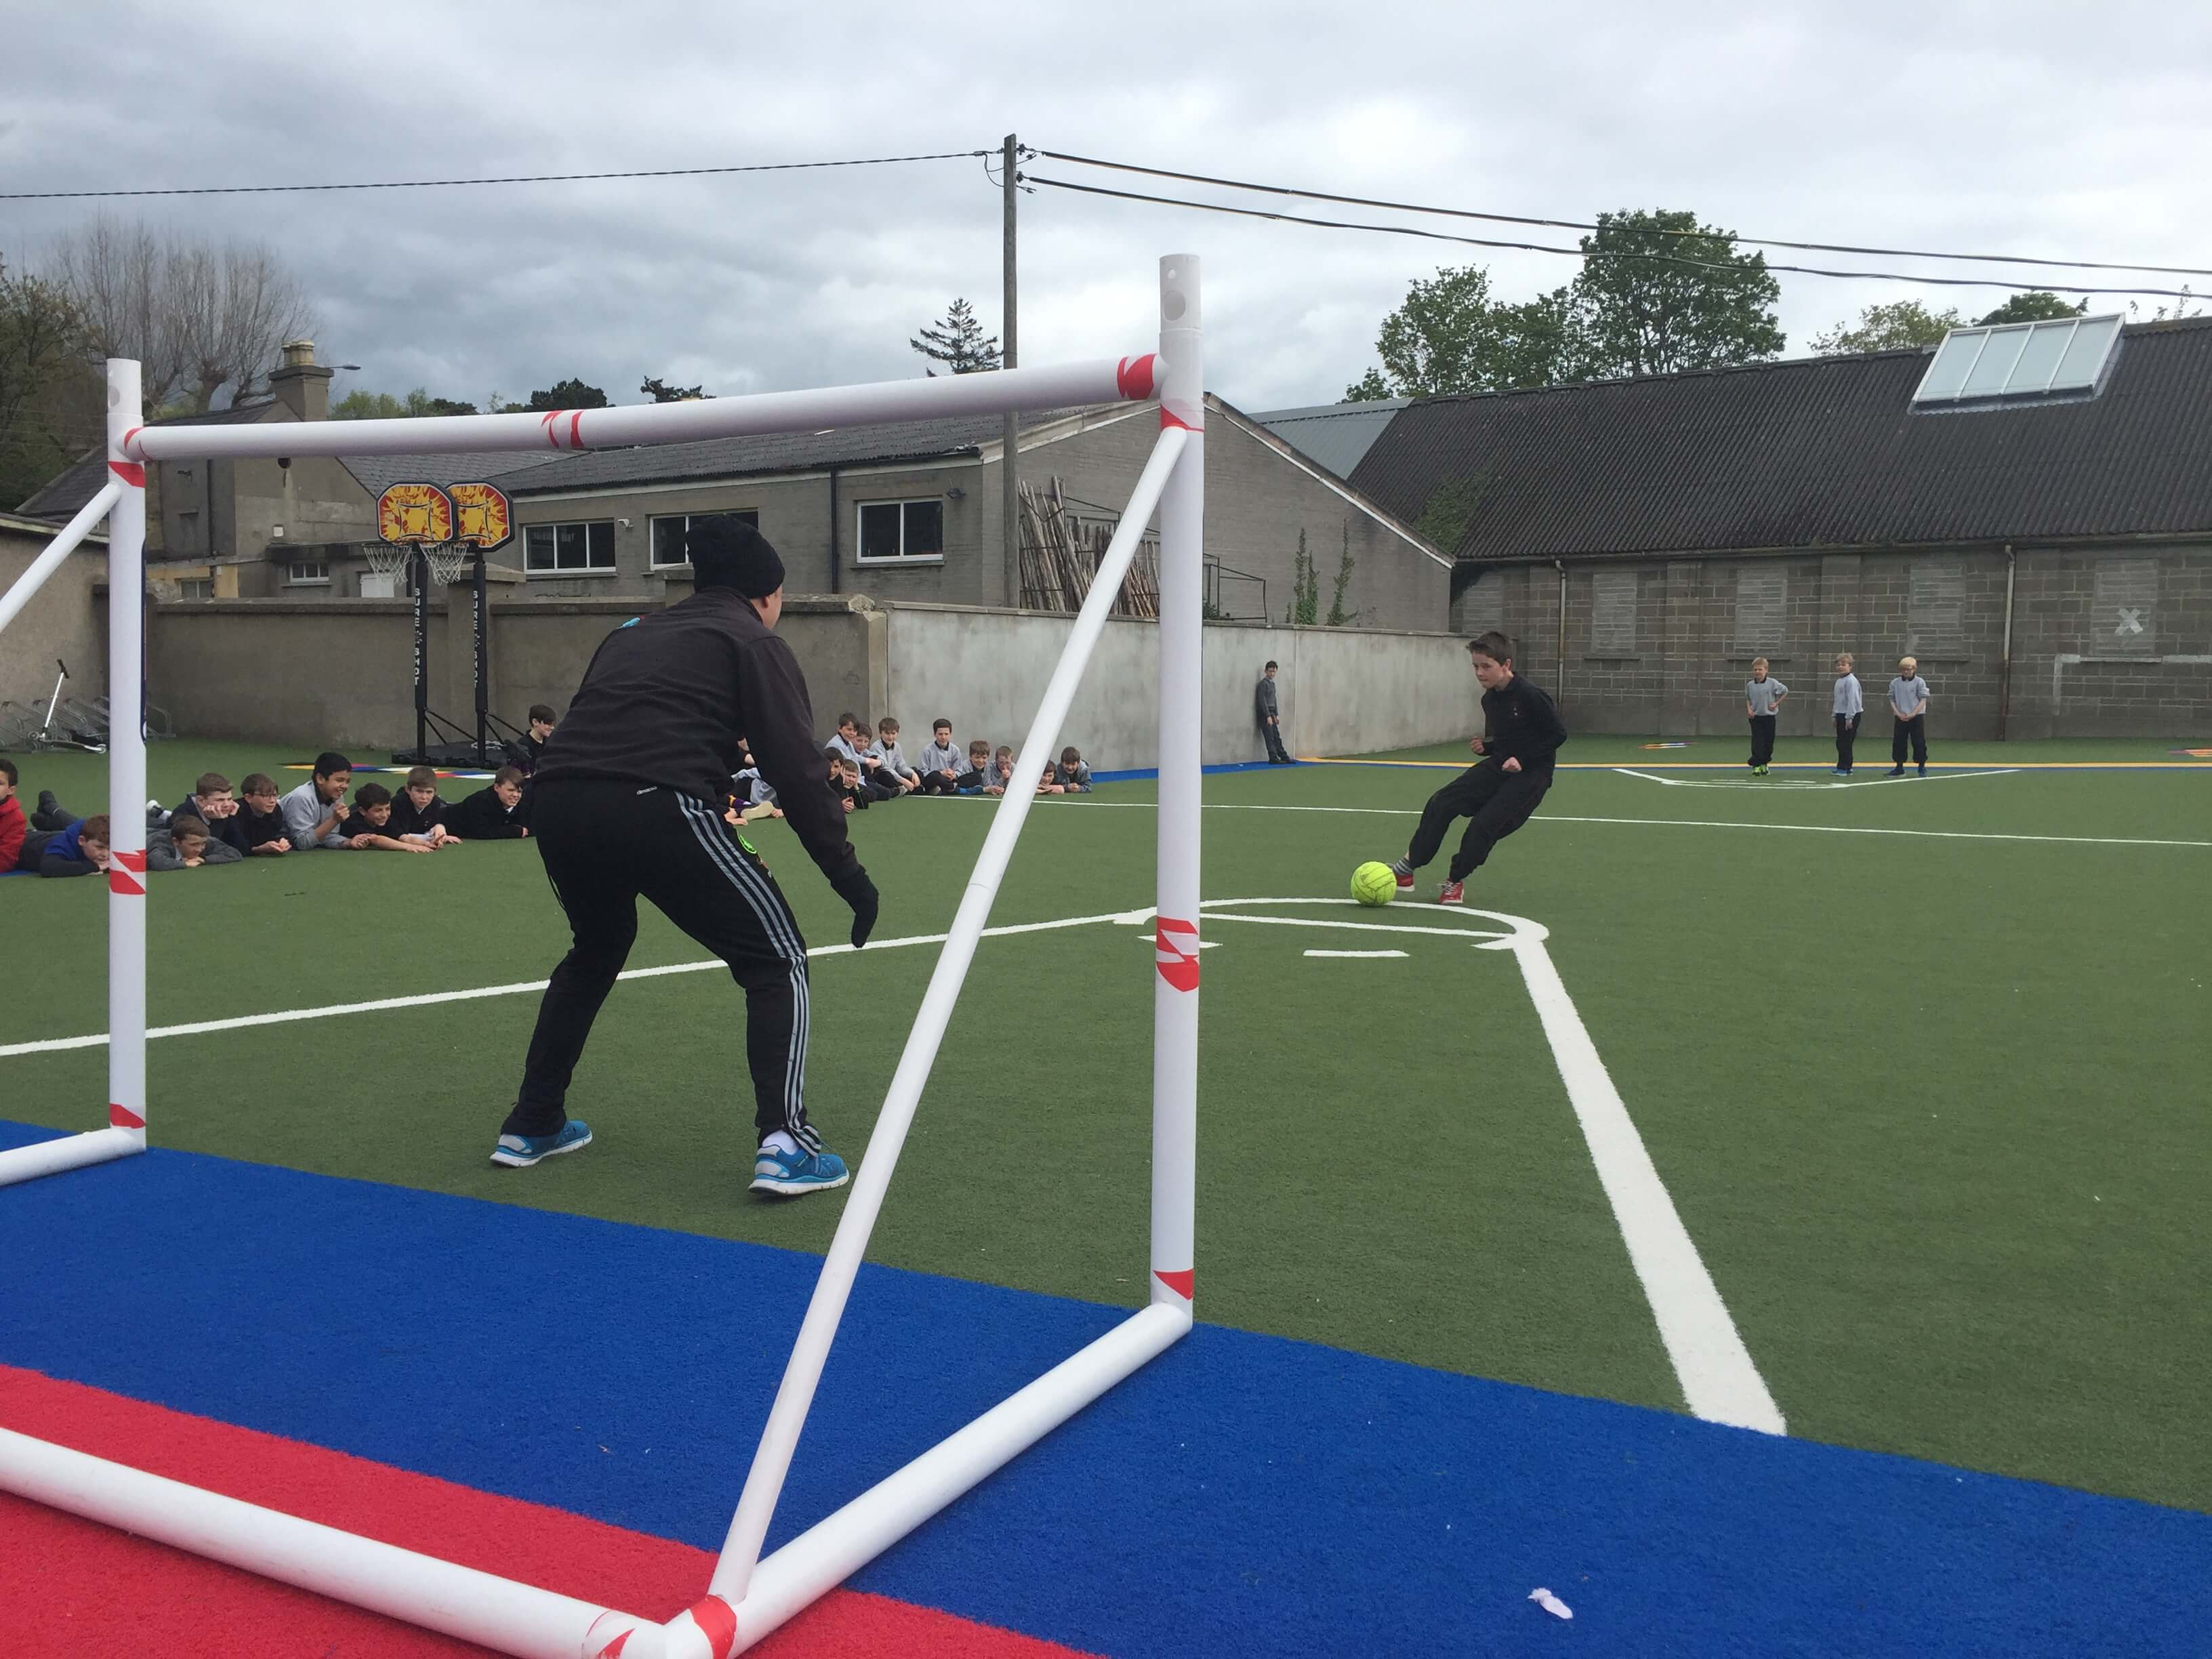 A photo of a St Laurences BNS teacher as a goalkeepers during a football game on Active Day